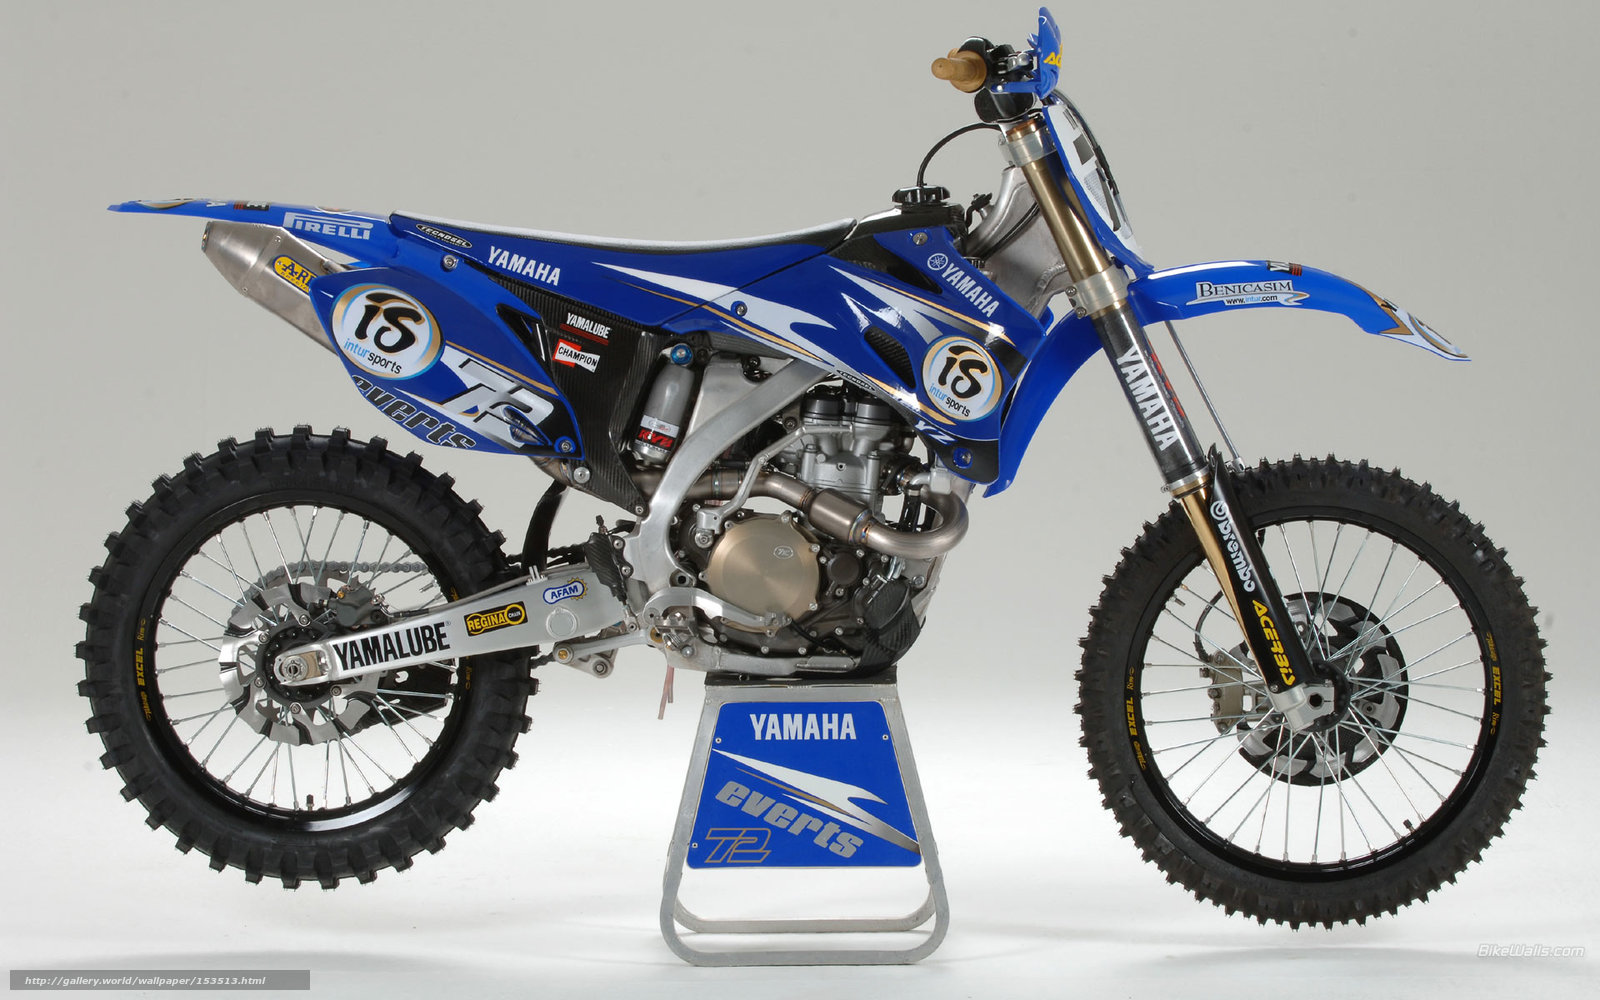 Download Wallpaper Yamaha Motocross YZ450F 2006 Free Desktop In The Resolution 1920x1200 Picture No153513